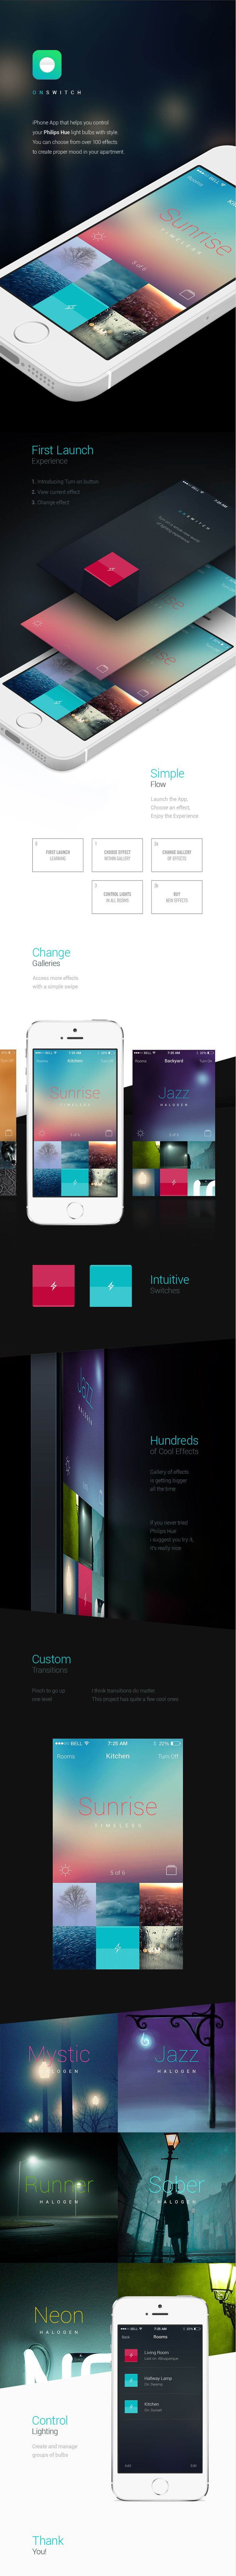 Sunrise - Application that lets you control Philips Hue light bulbs. #ui…